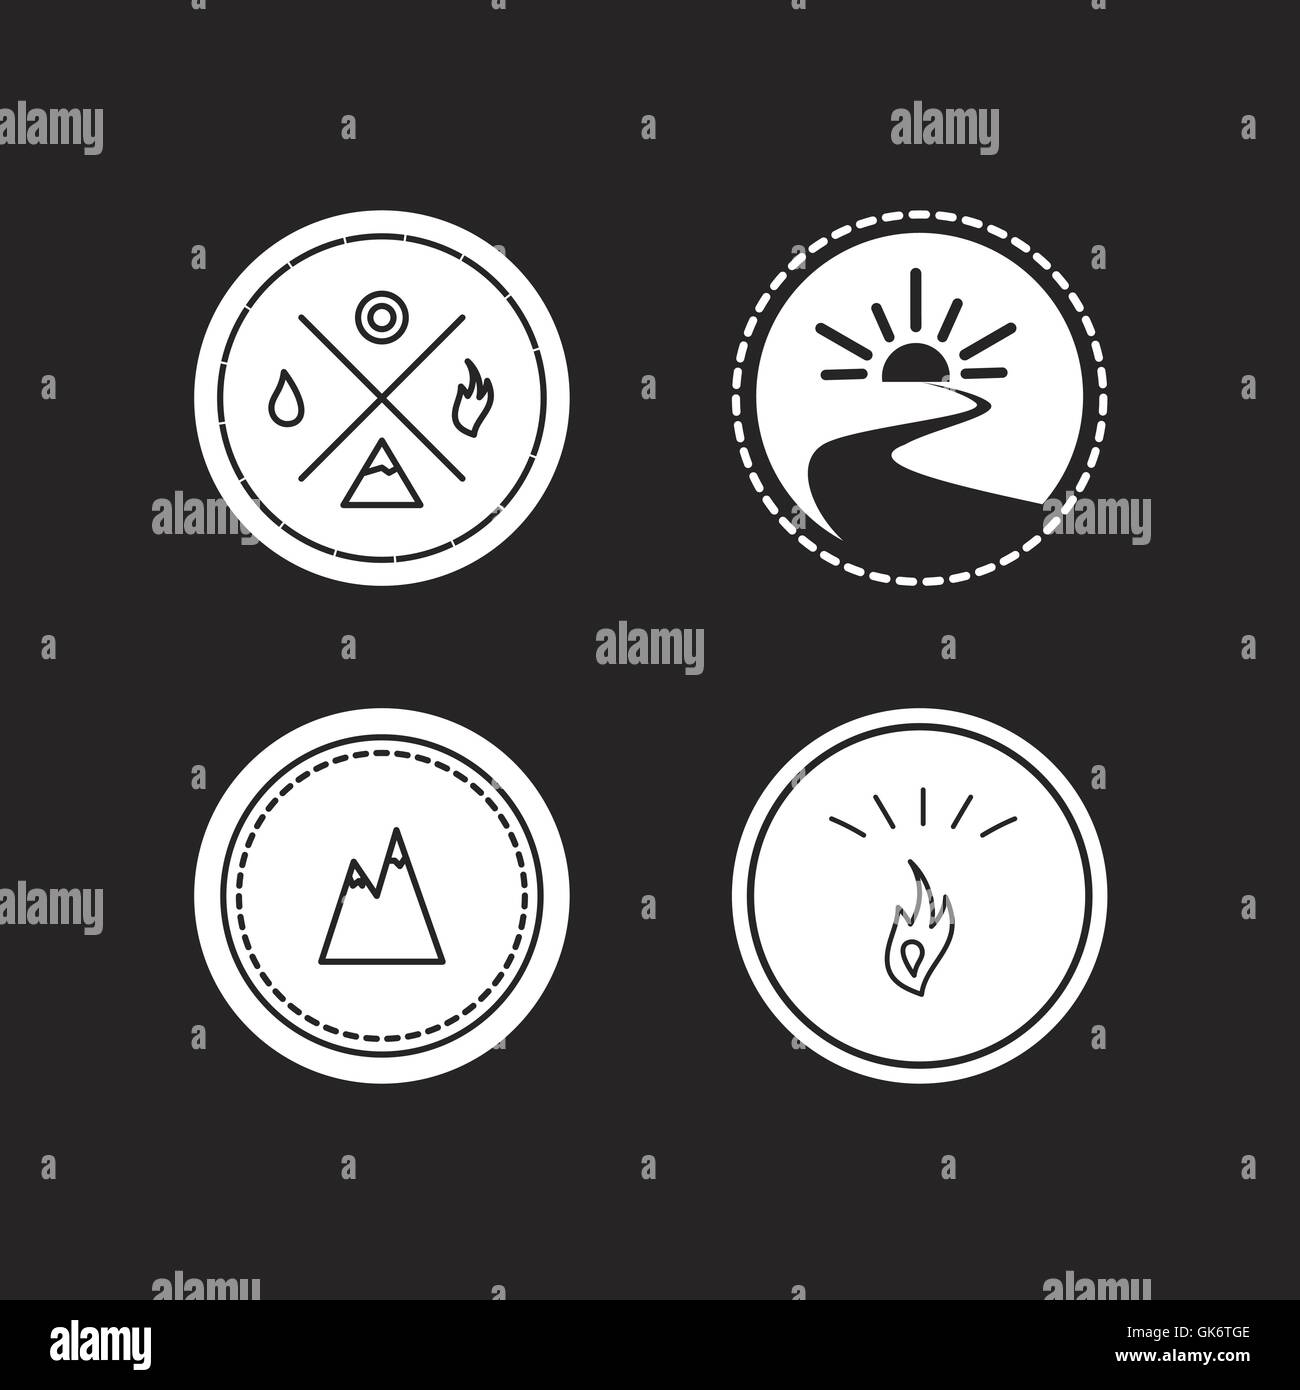 Vector set of ecology logotypes, icon and nature symbol: sun, river, water in circle, mountains, hire, water - Stock Image